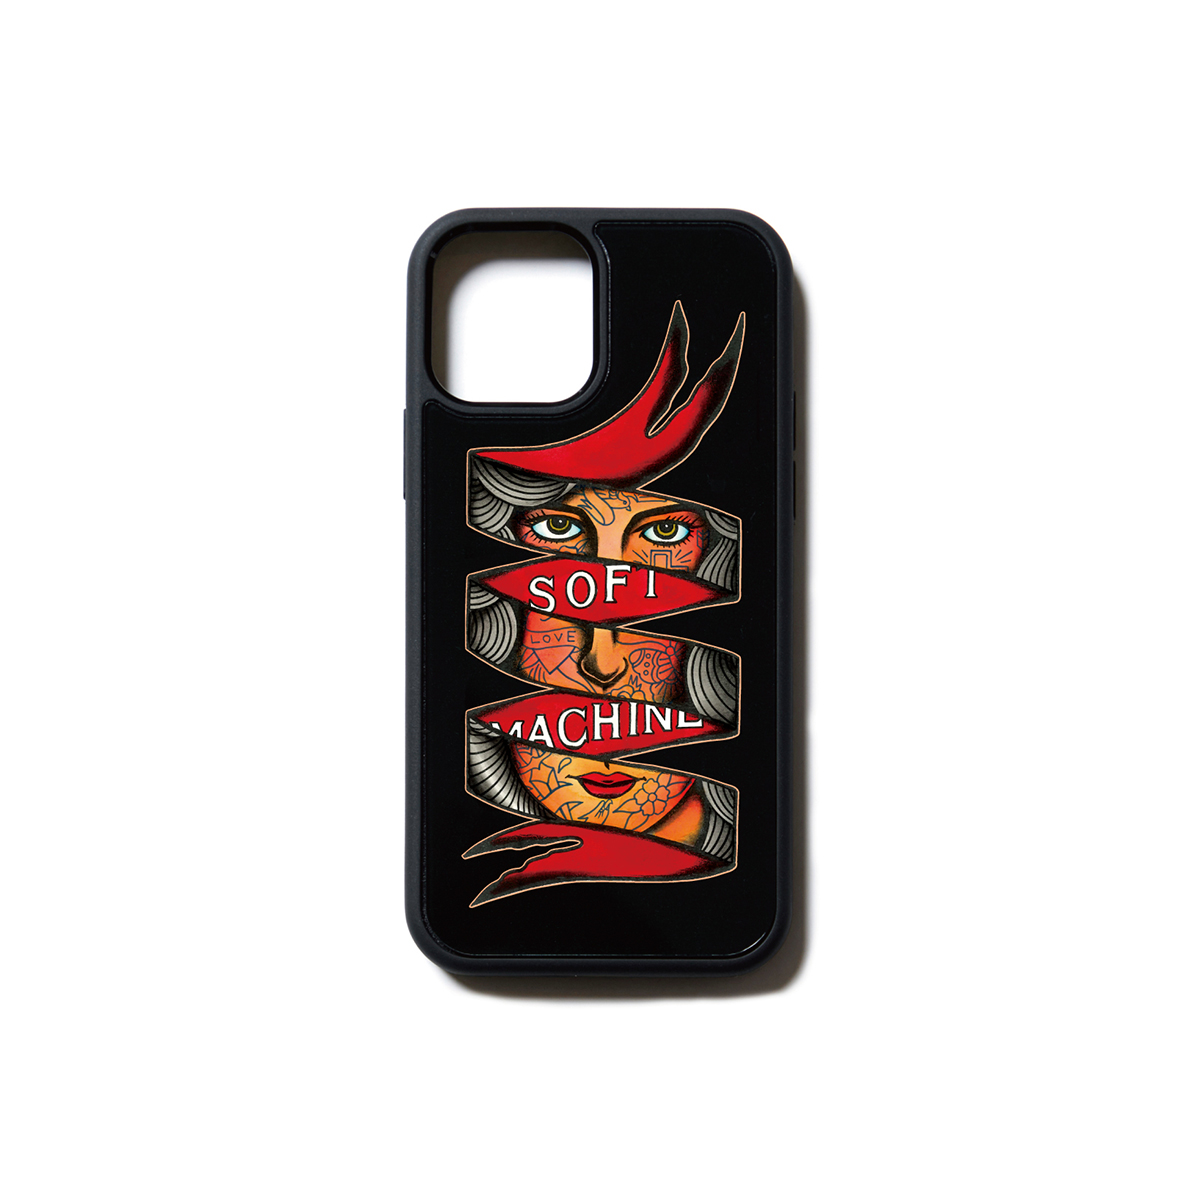 endroll_iPhonecase